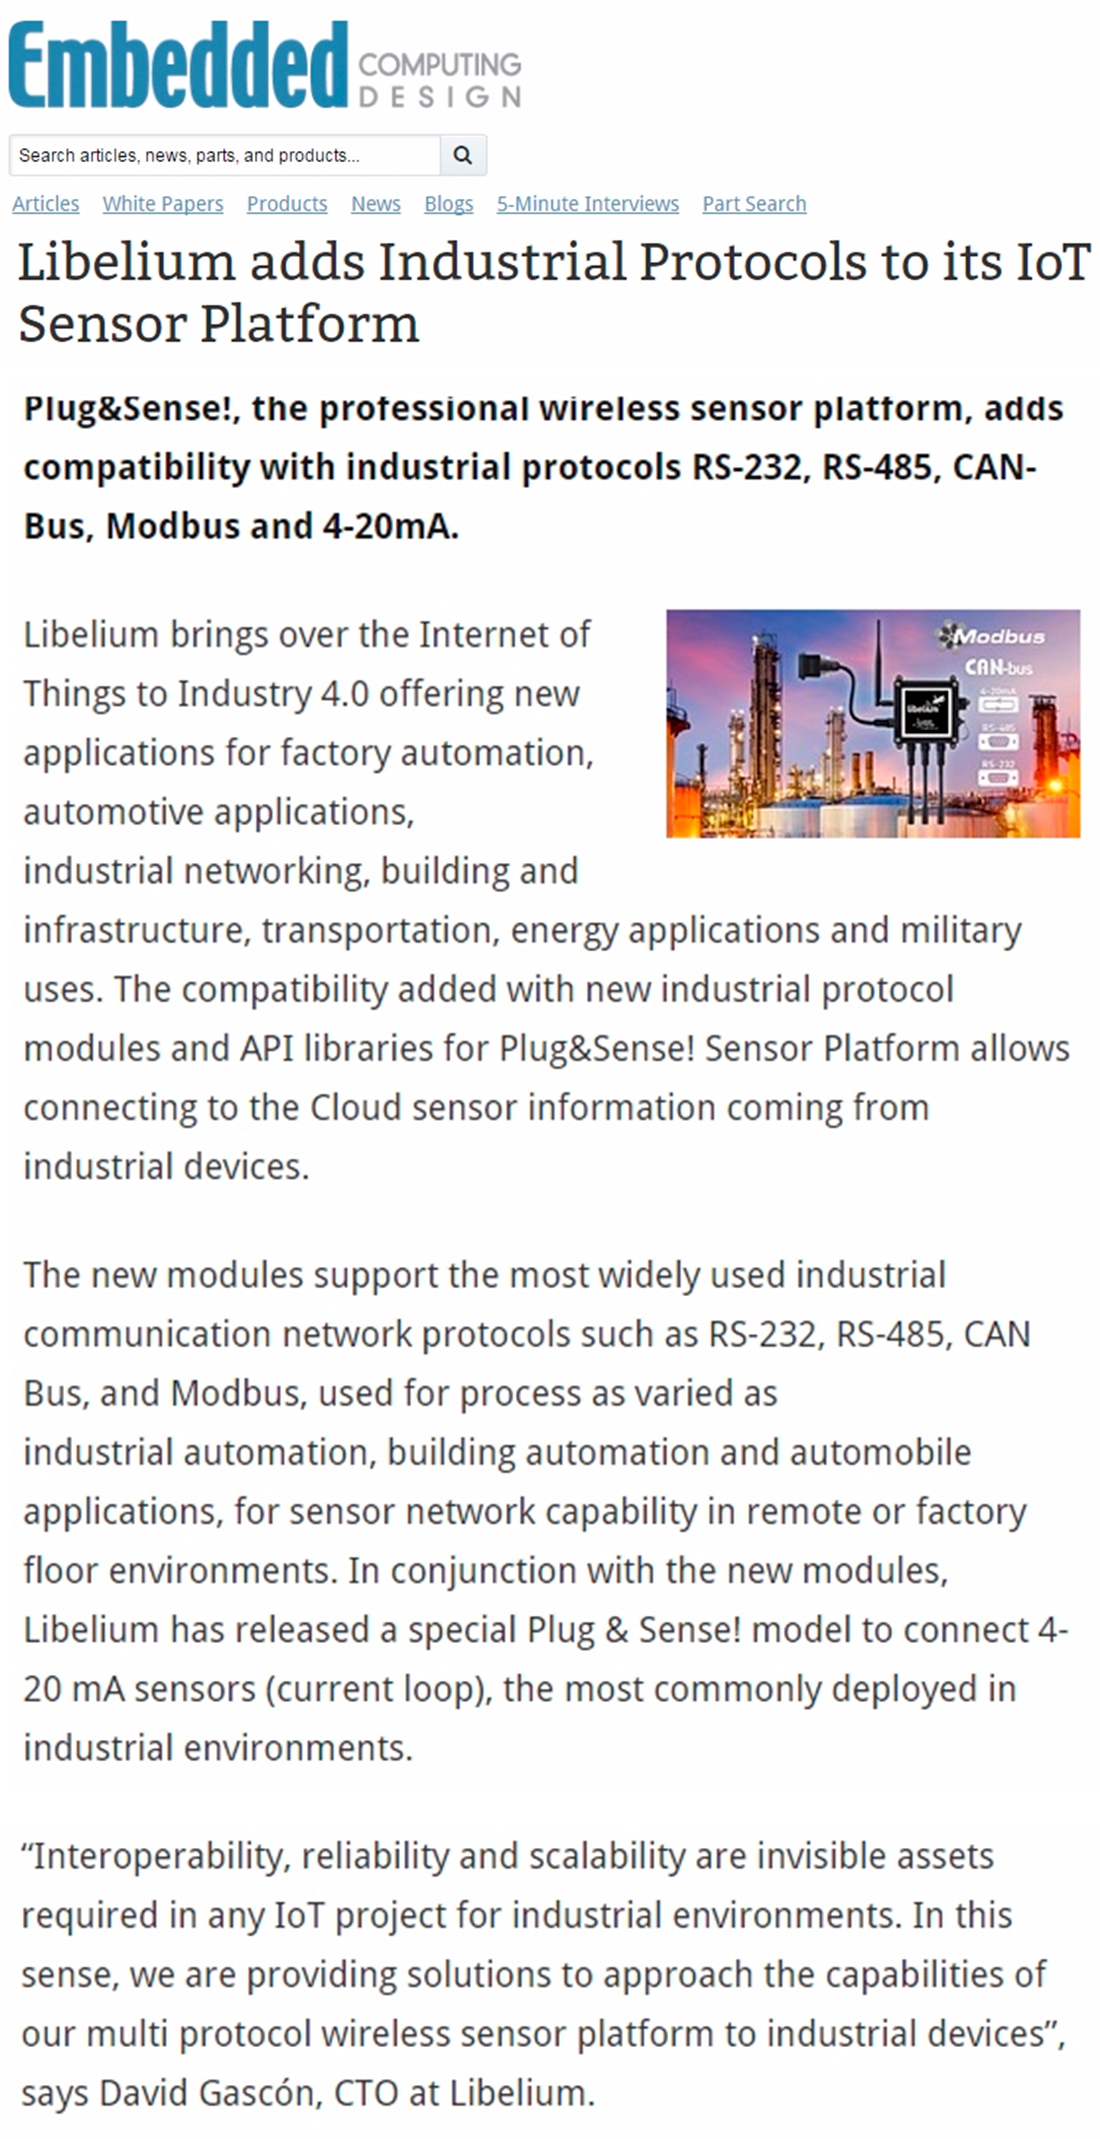 Embedded Computing Design – Libelium adds Industrial Protocols